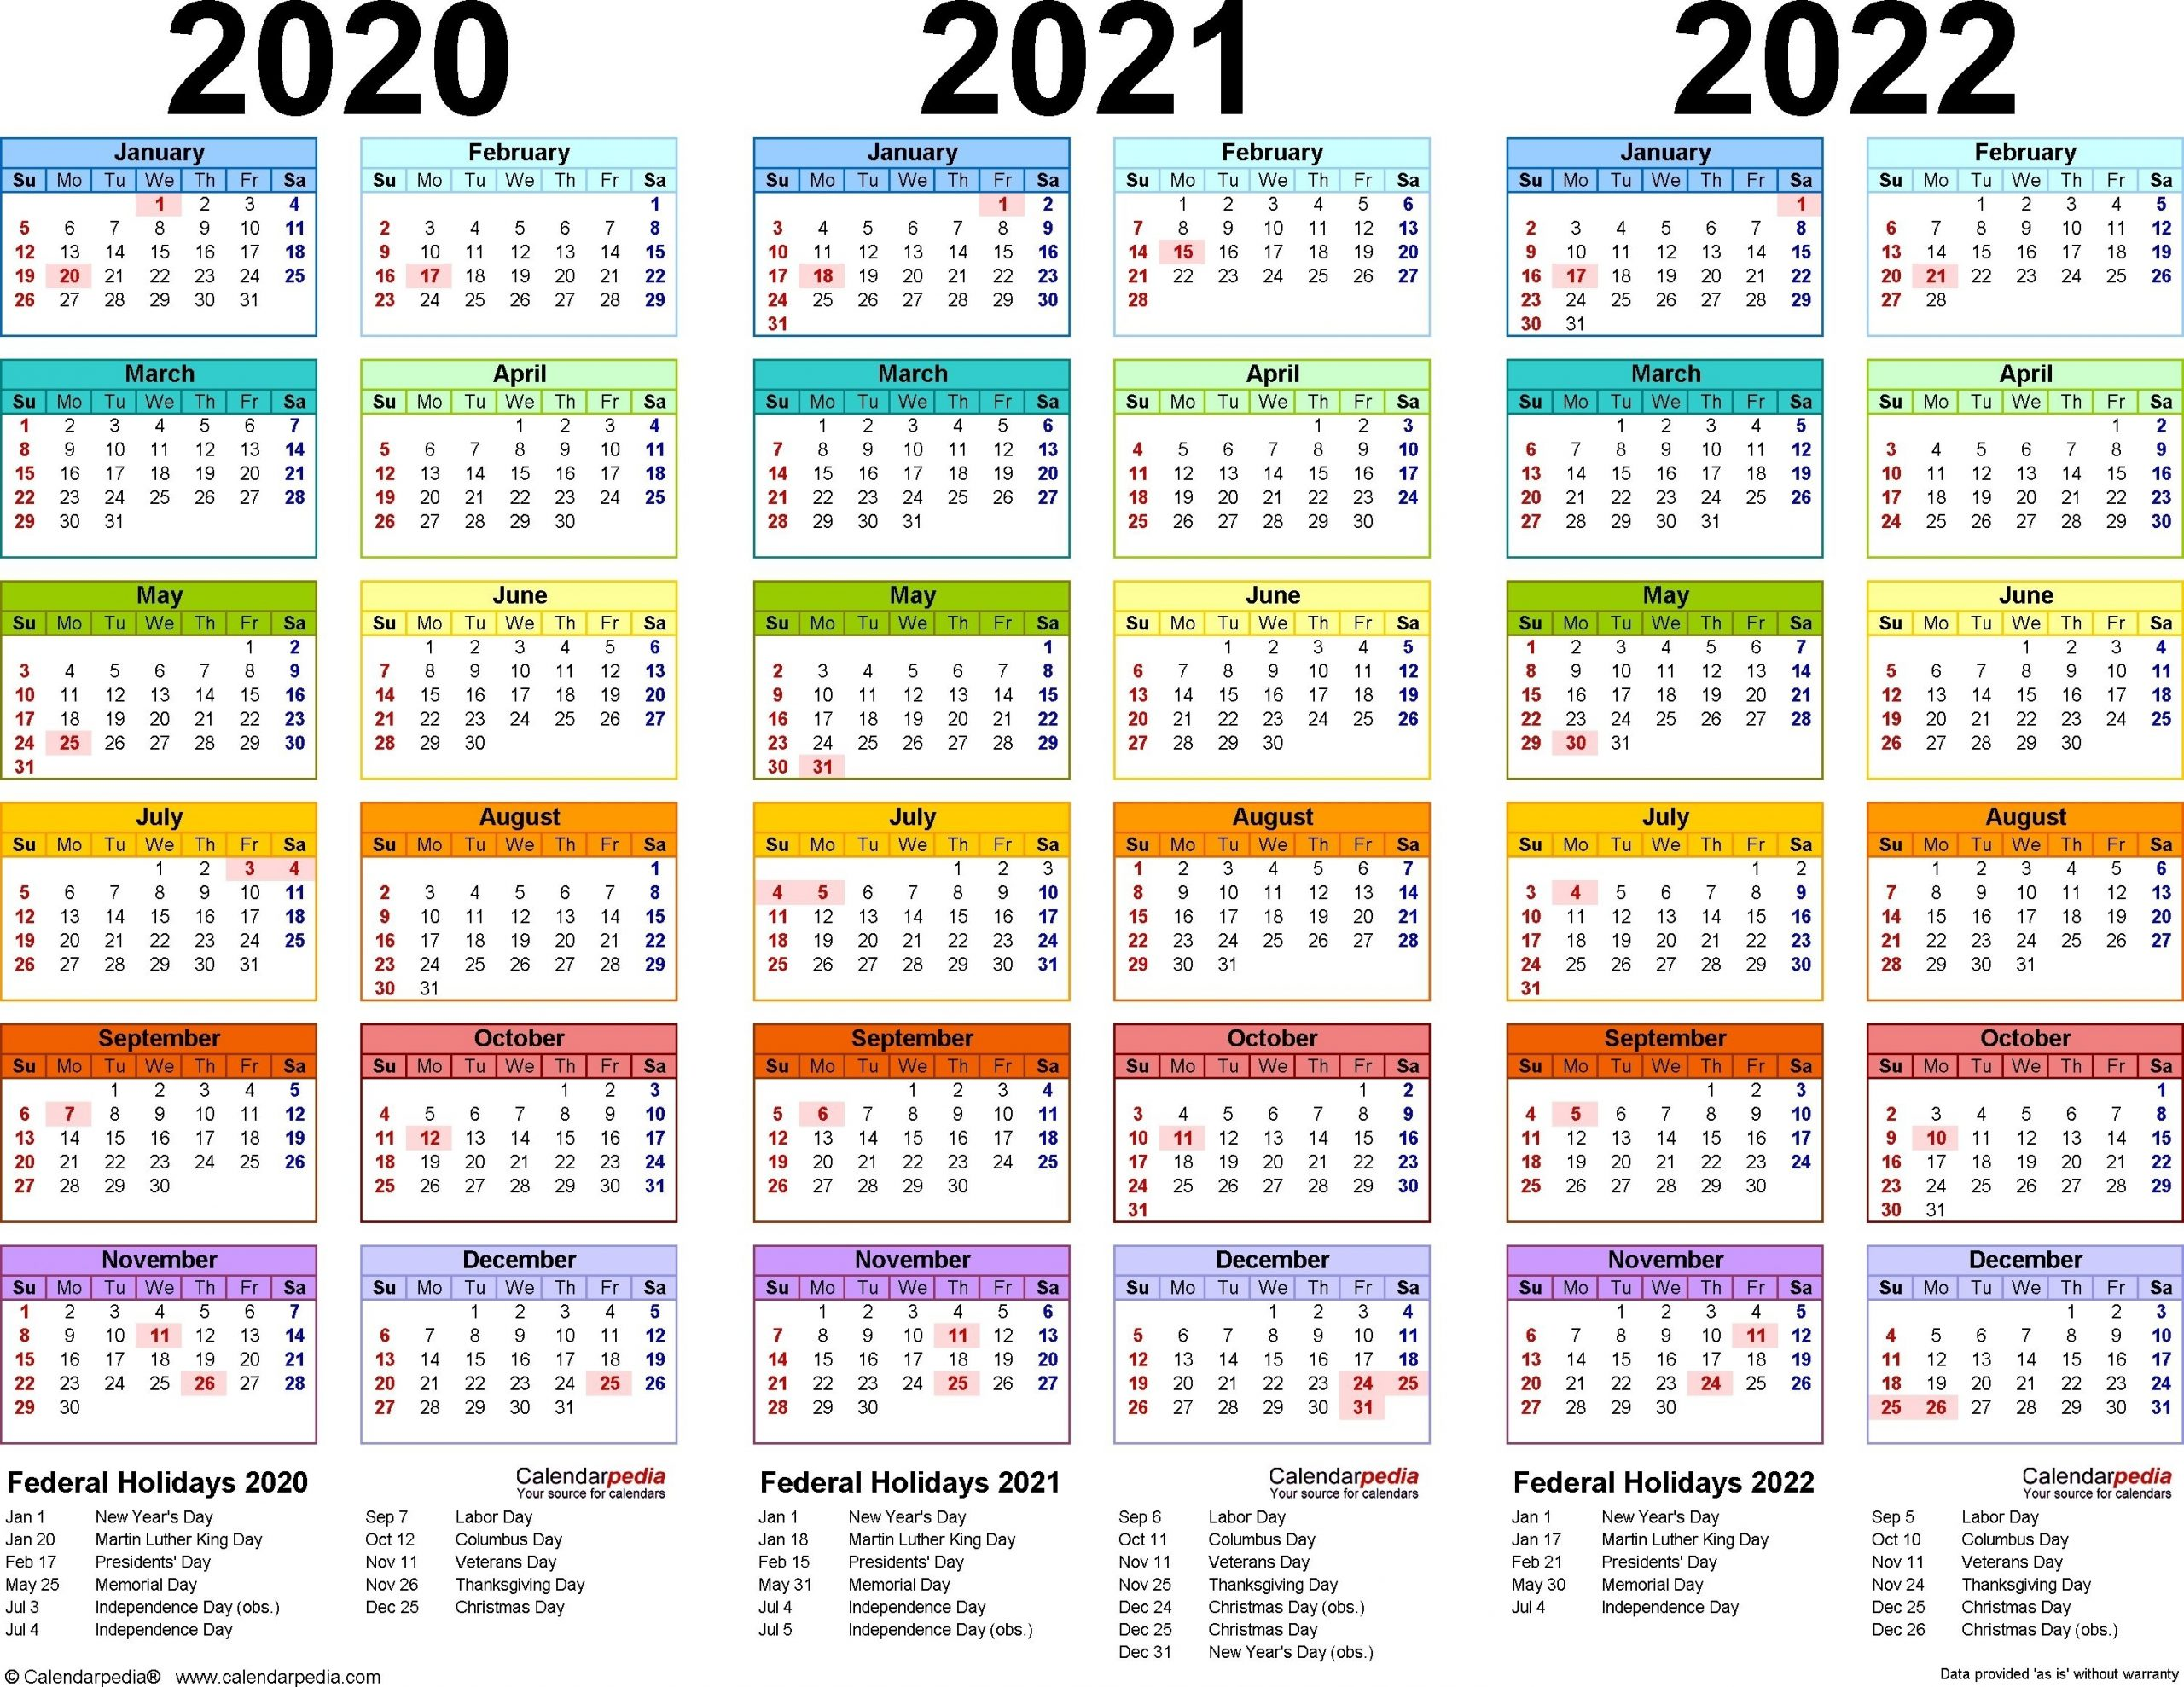 Get Calendars For The Years 2021 2021 & 2022